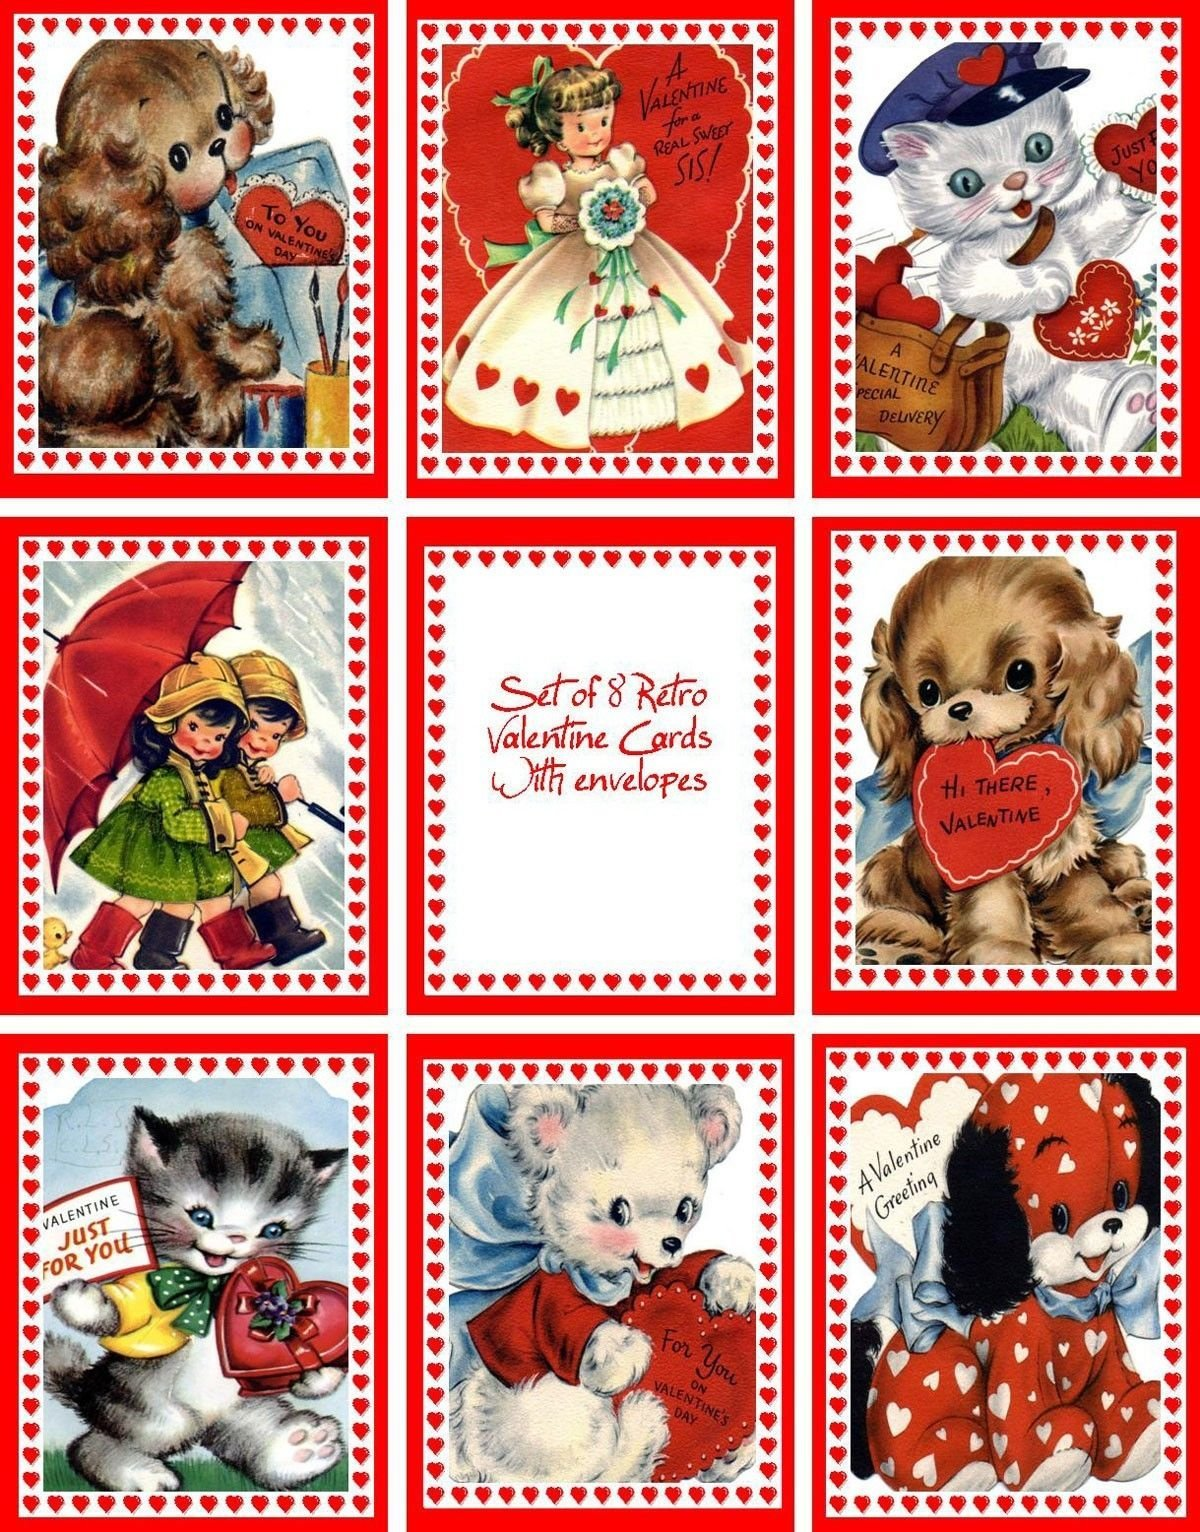 Vintage retro Valentine 8 cards tags with envelopes by Corinne Frain